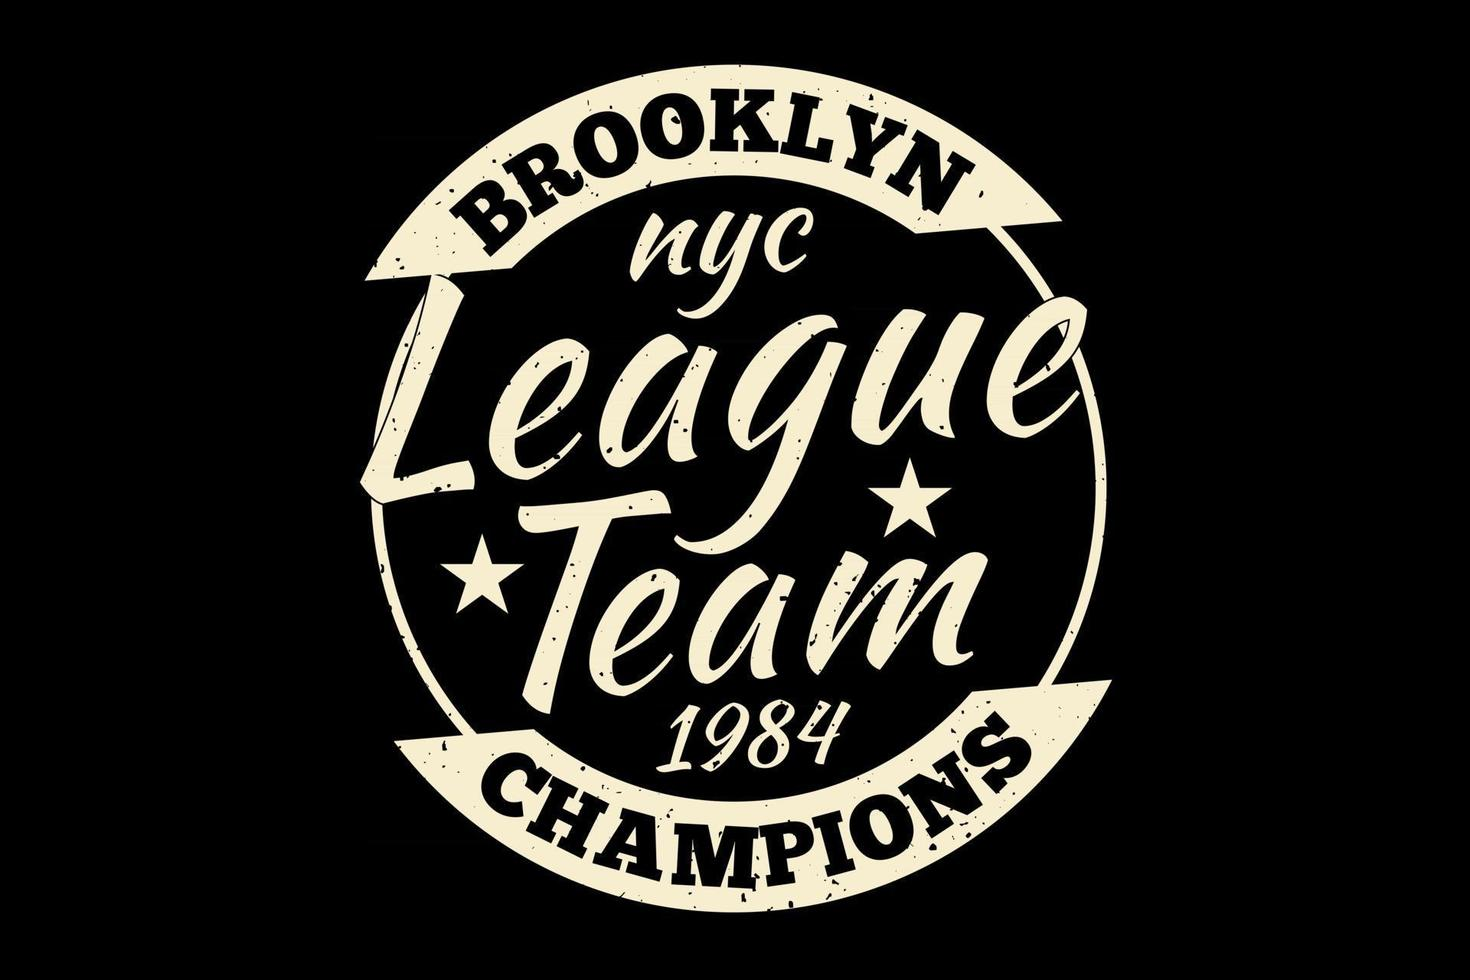 T-shirt typography brooklyn league champions vintage style vector